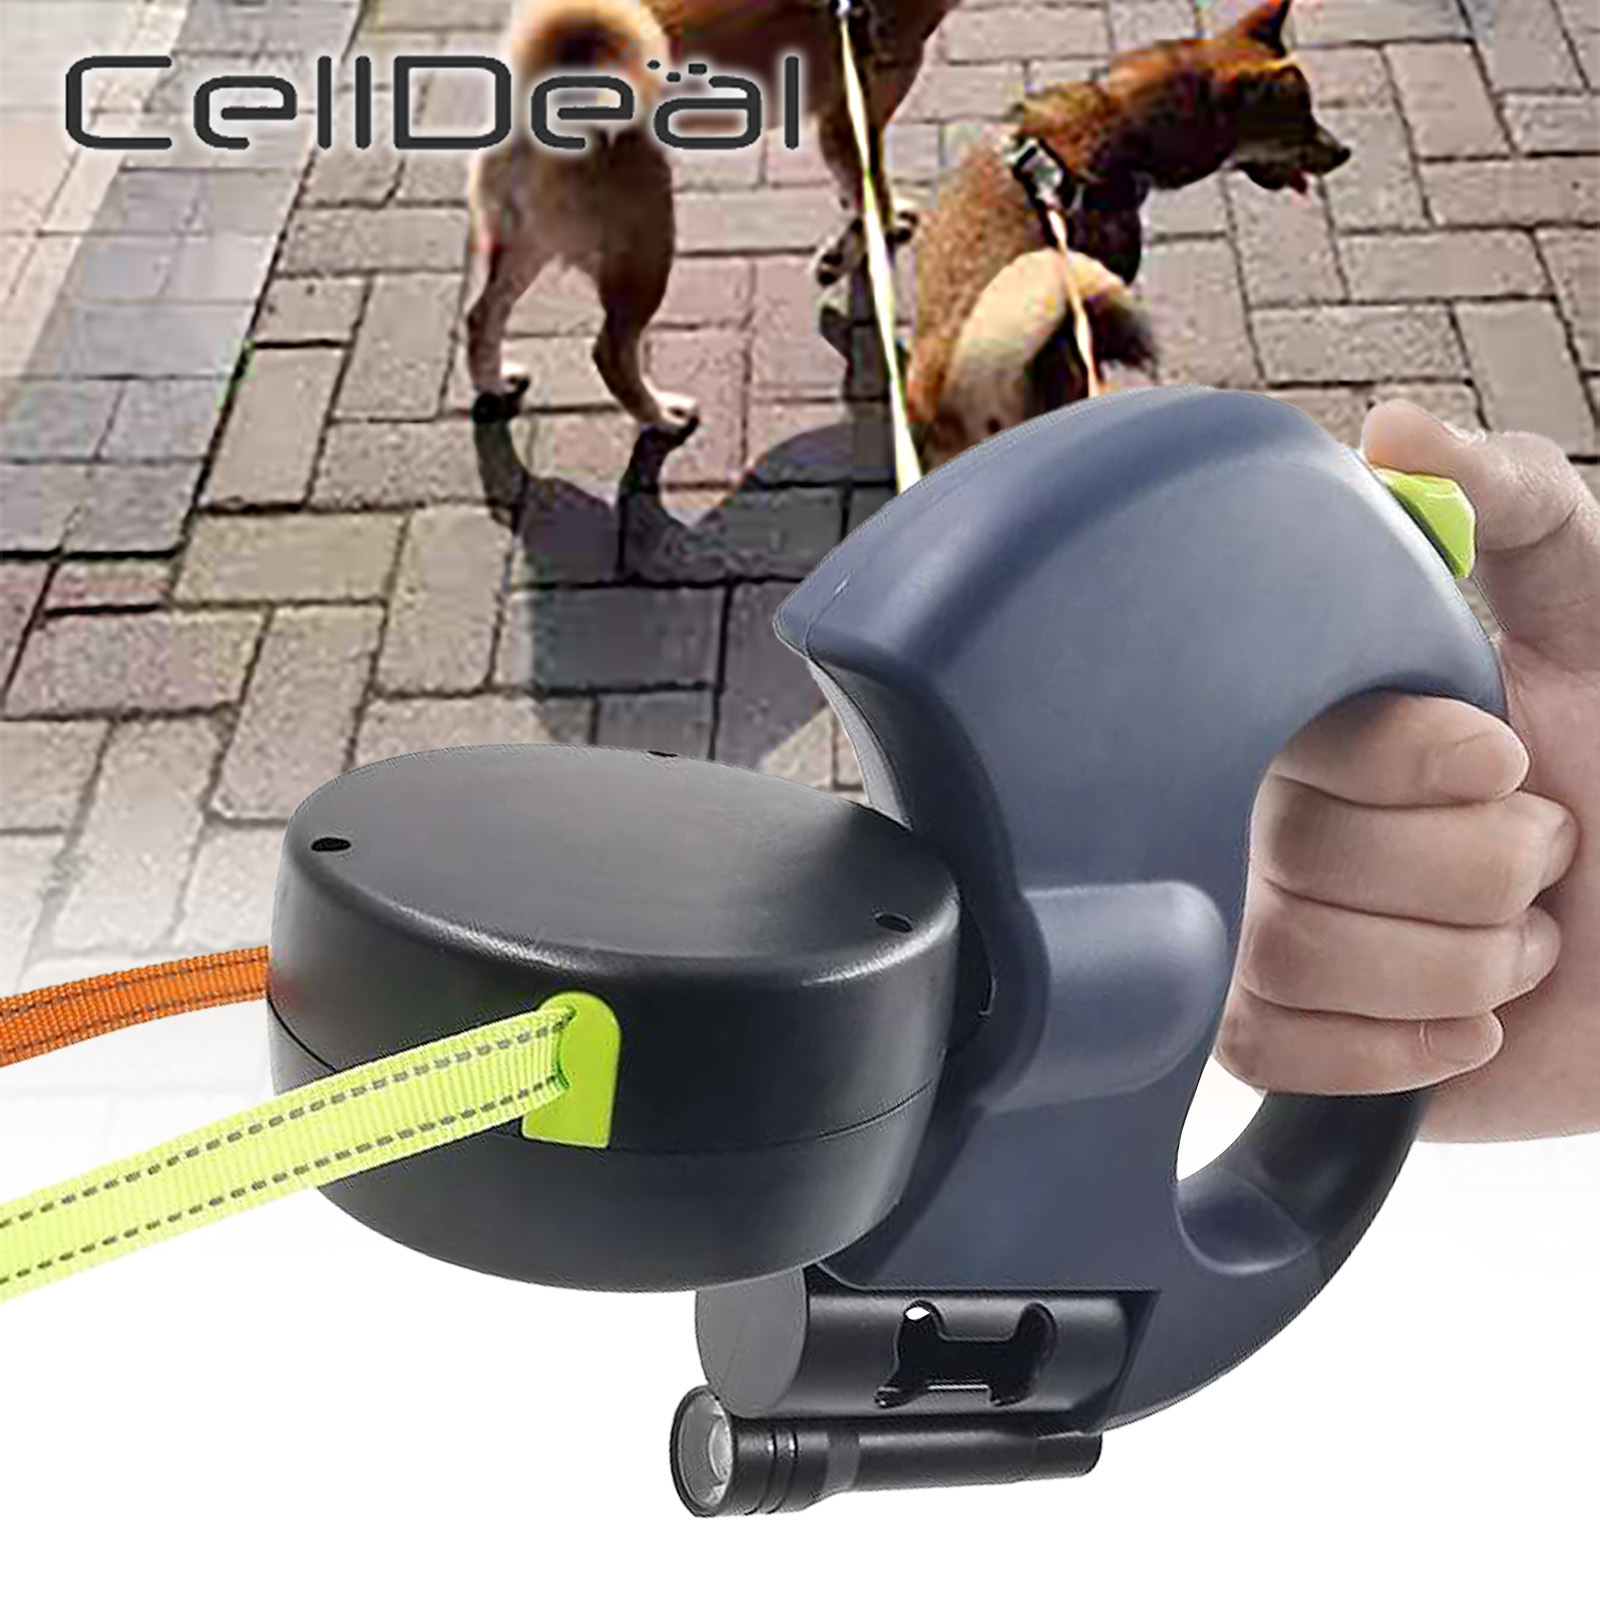 2 Color Retractable Dual Double Pet Leash Rope Zero Tangle Walk For Two Dog Walk The Dog Adjustable Pet Leash Pet Supplies